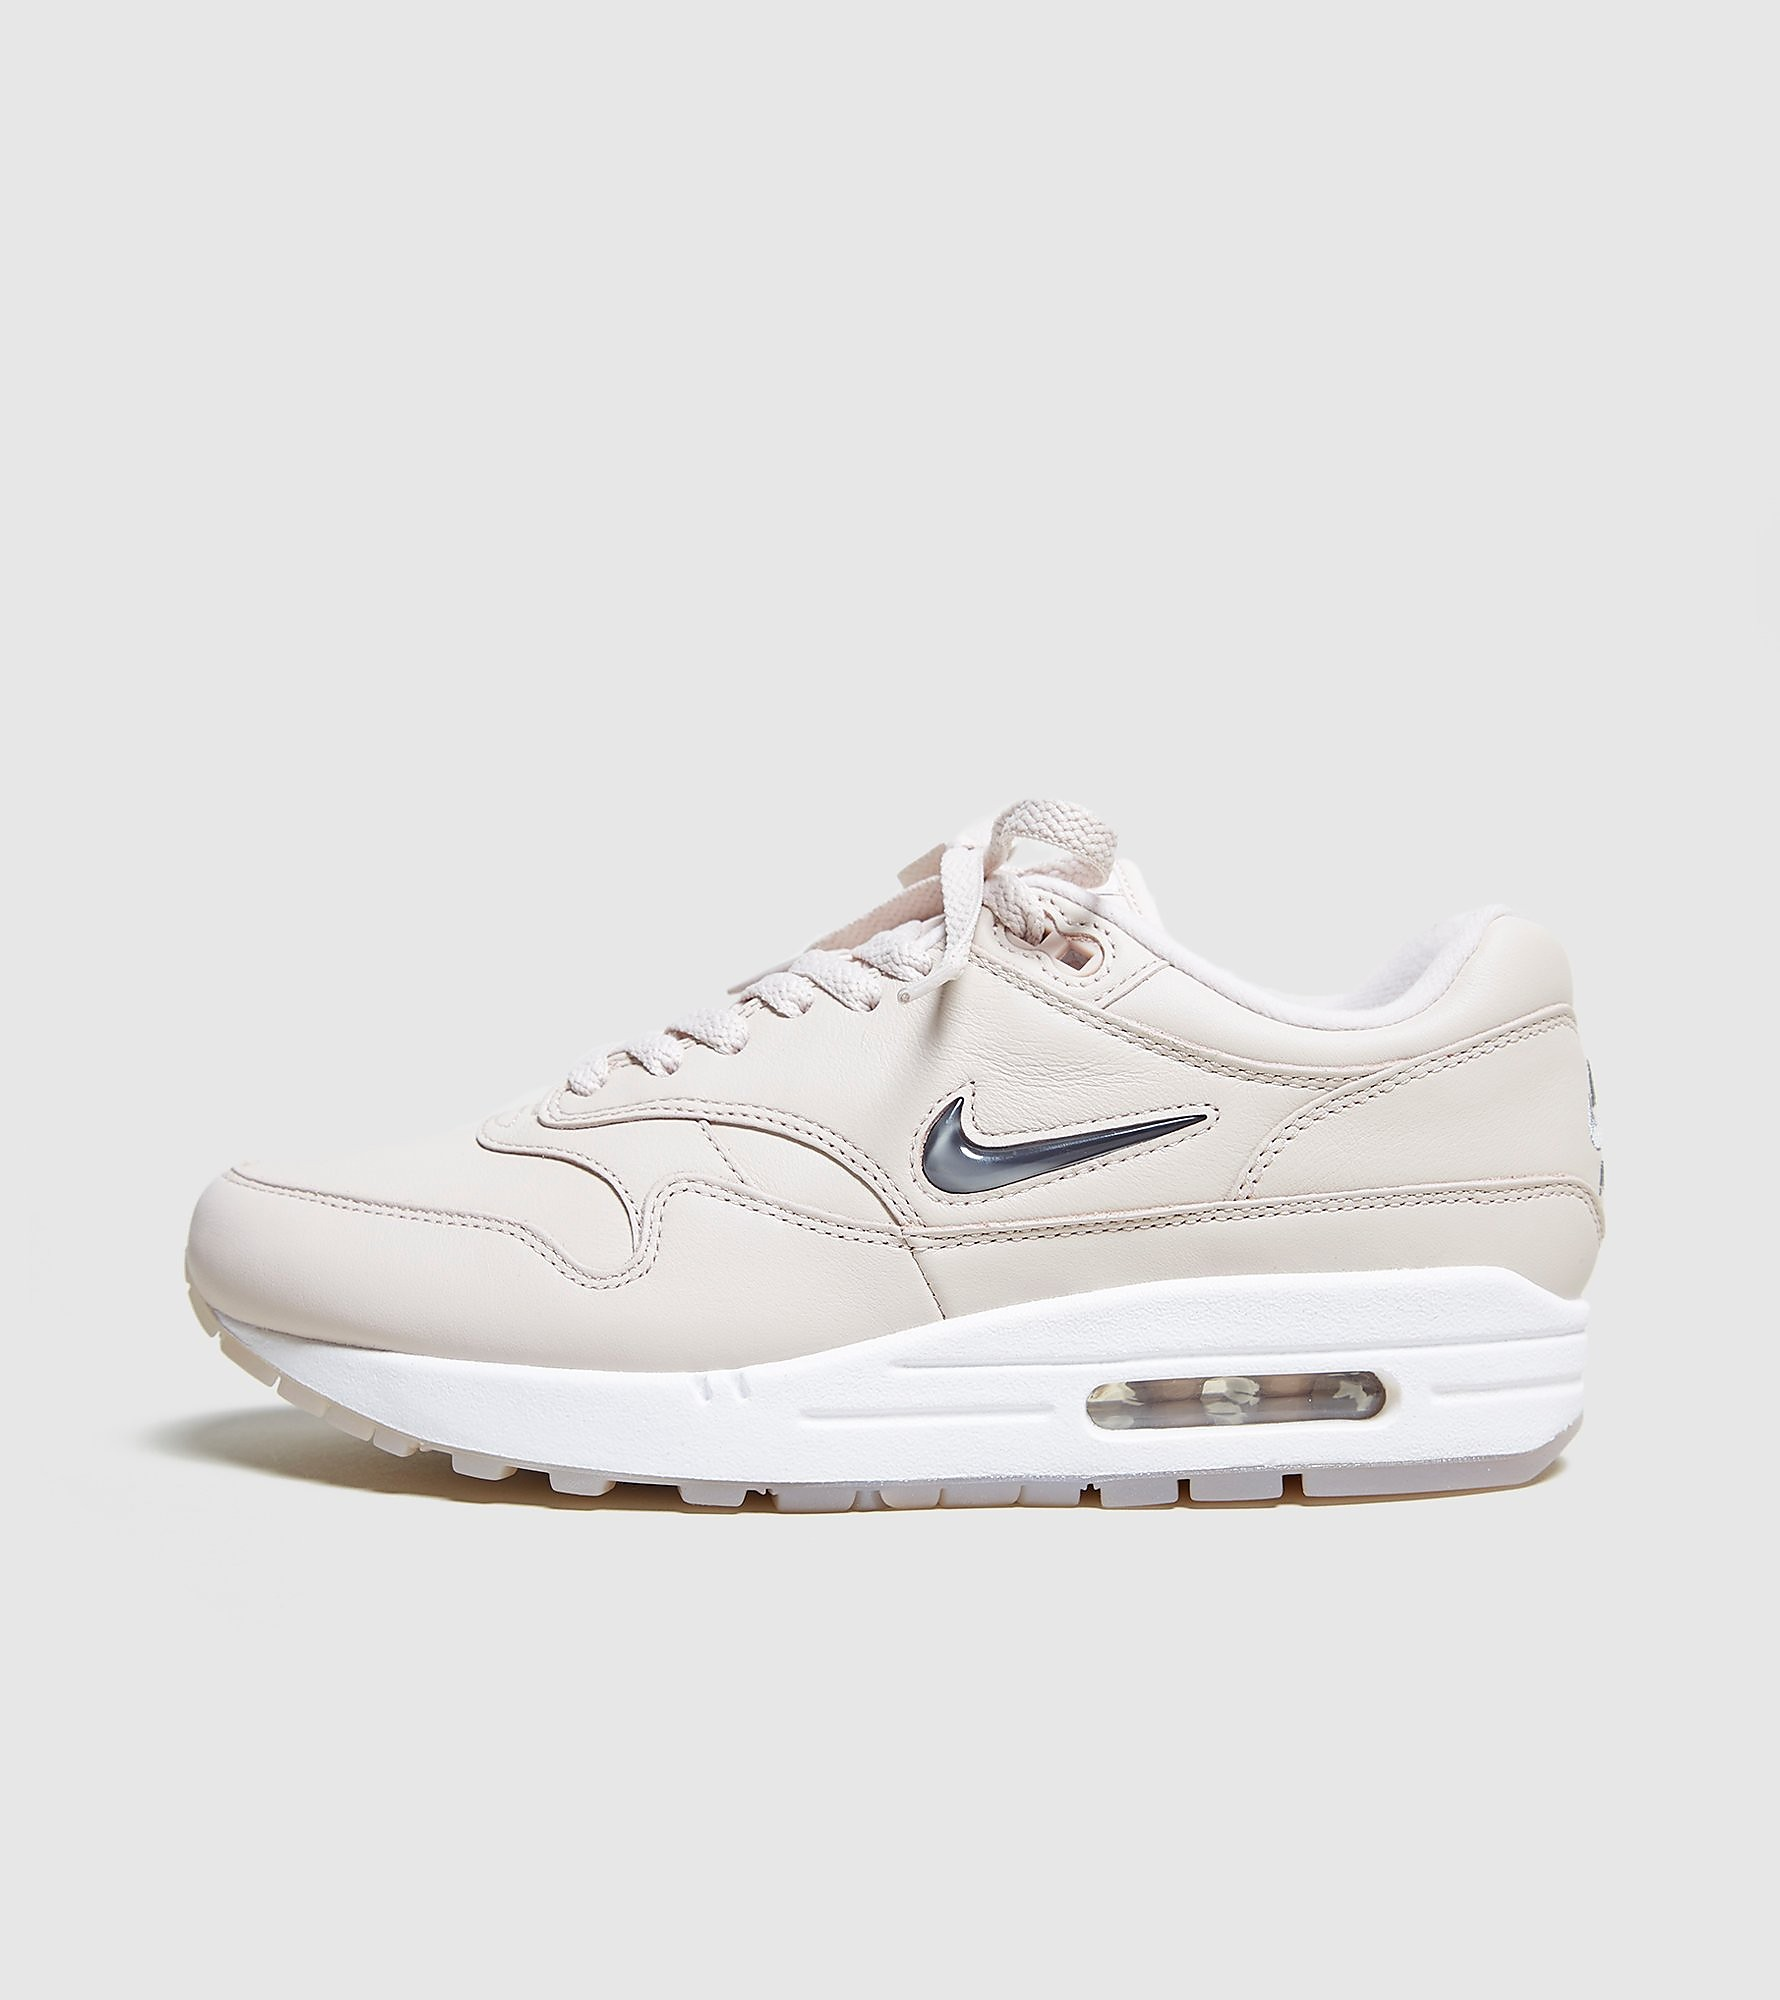 Nike Air Max 1 Jewel Women's